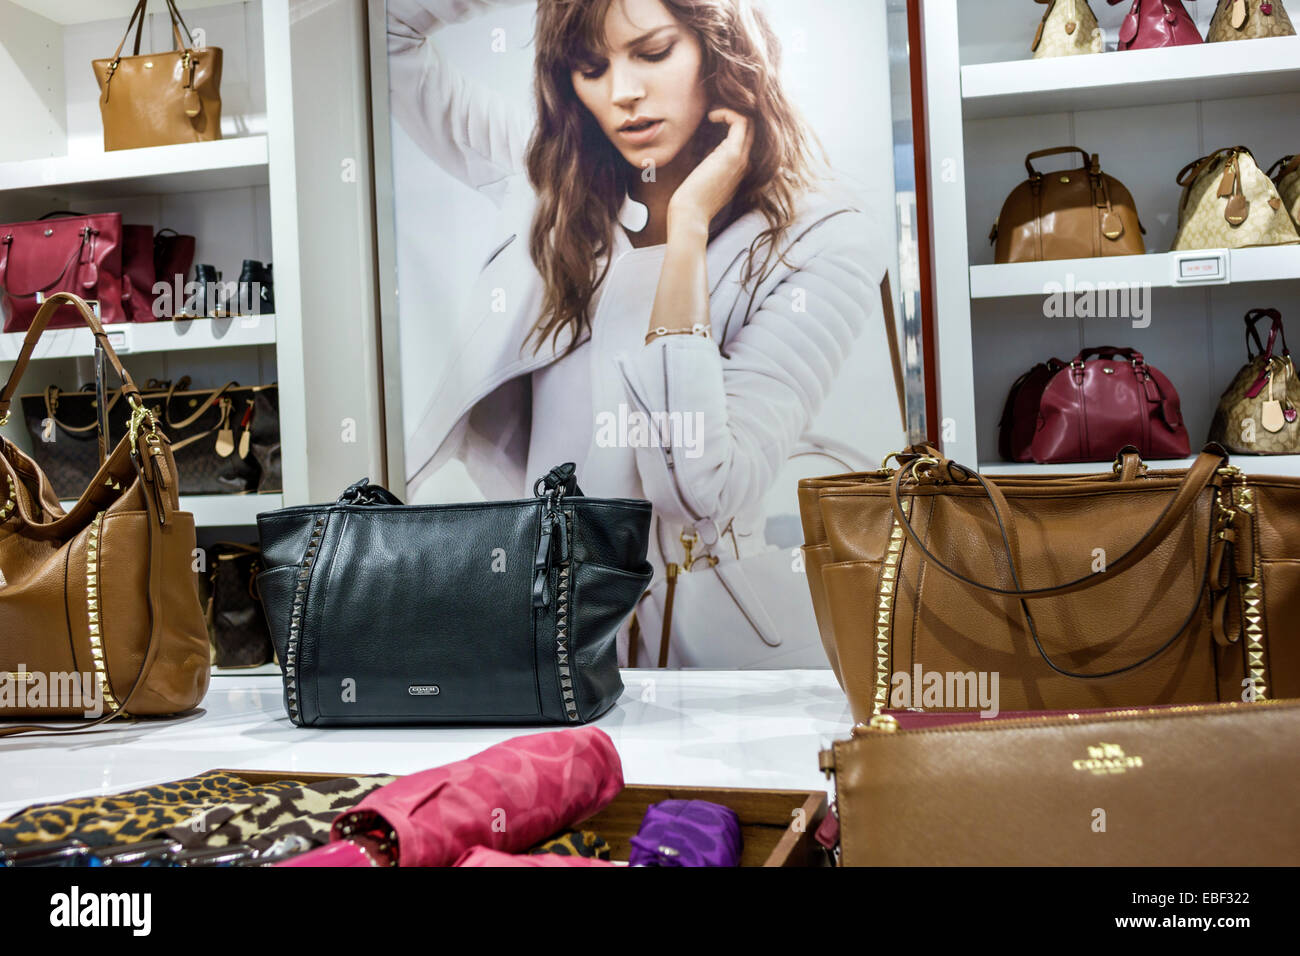 coachfactory outlet 8e40  Orlando Florida Premium Outlets shopping Coach Factory leather goods  display sale women's handbags inside